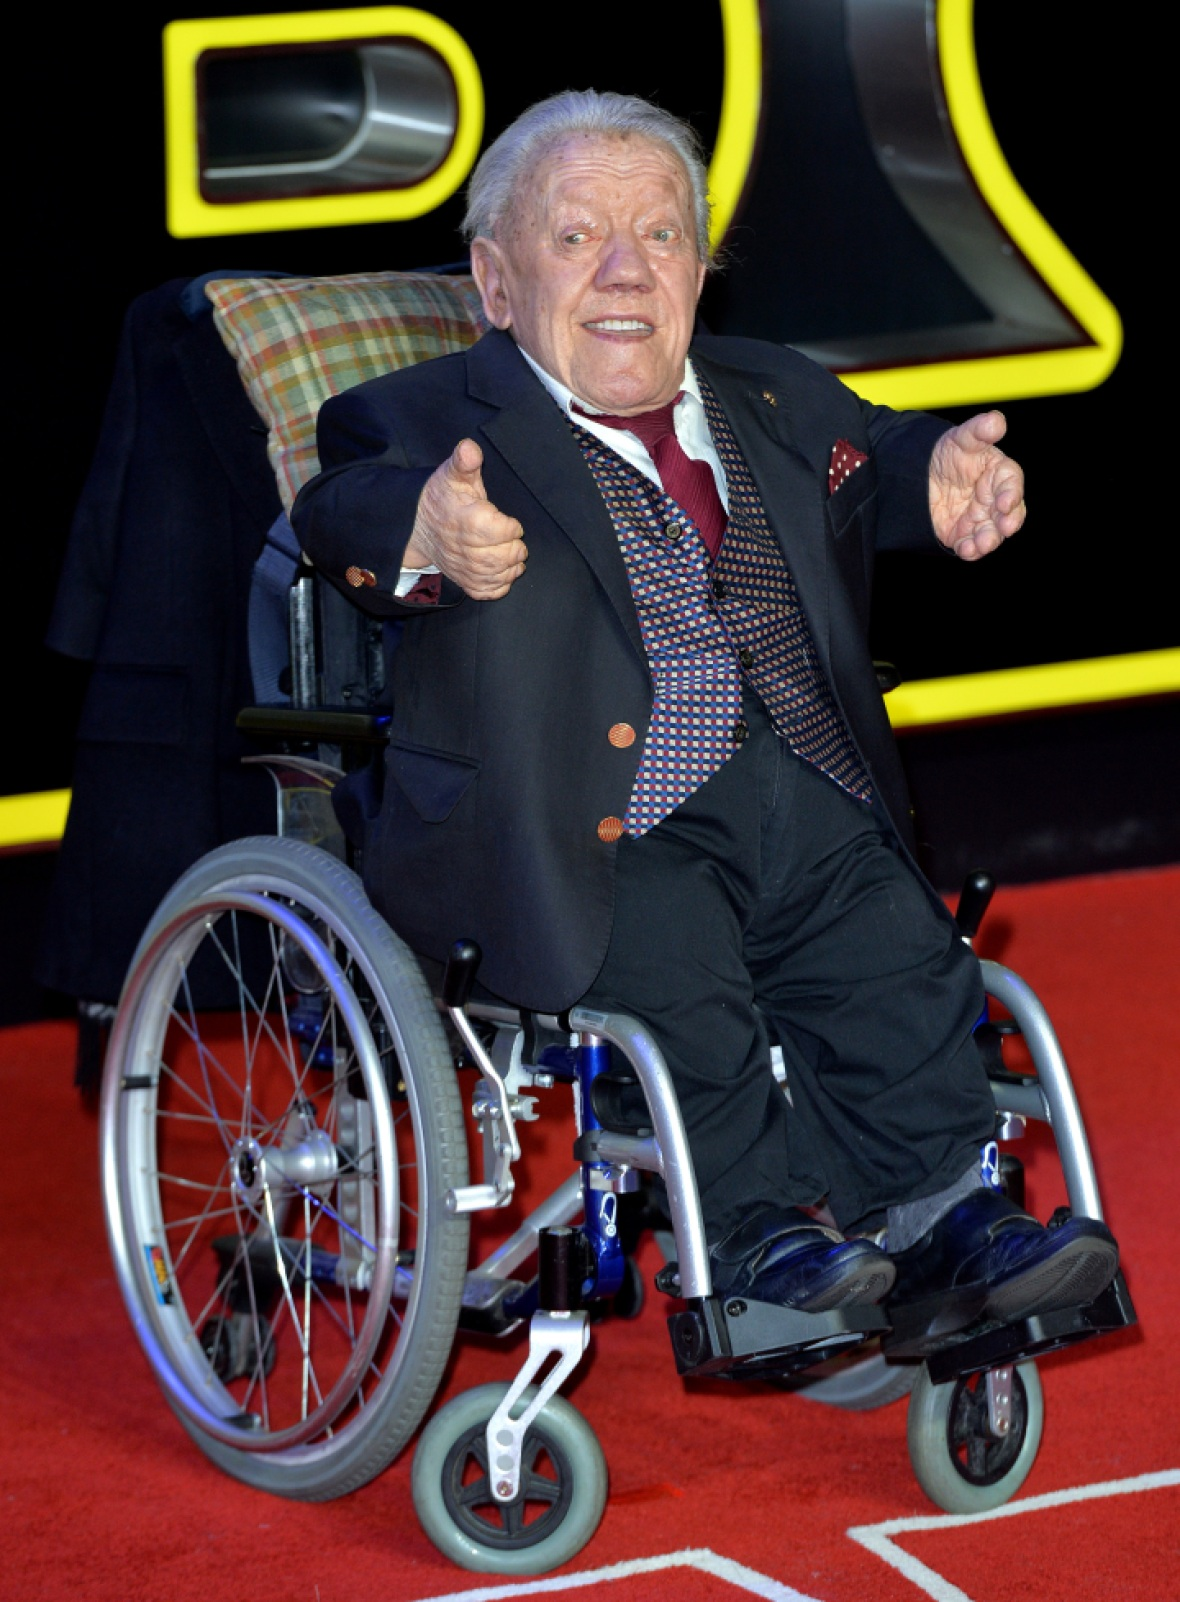 kenny baker getty images